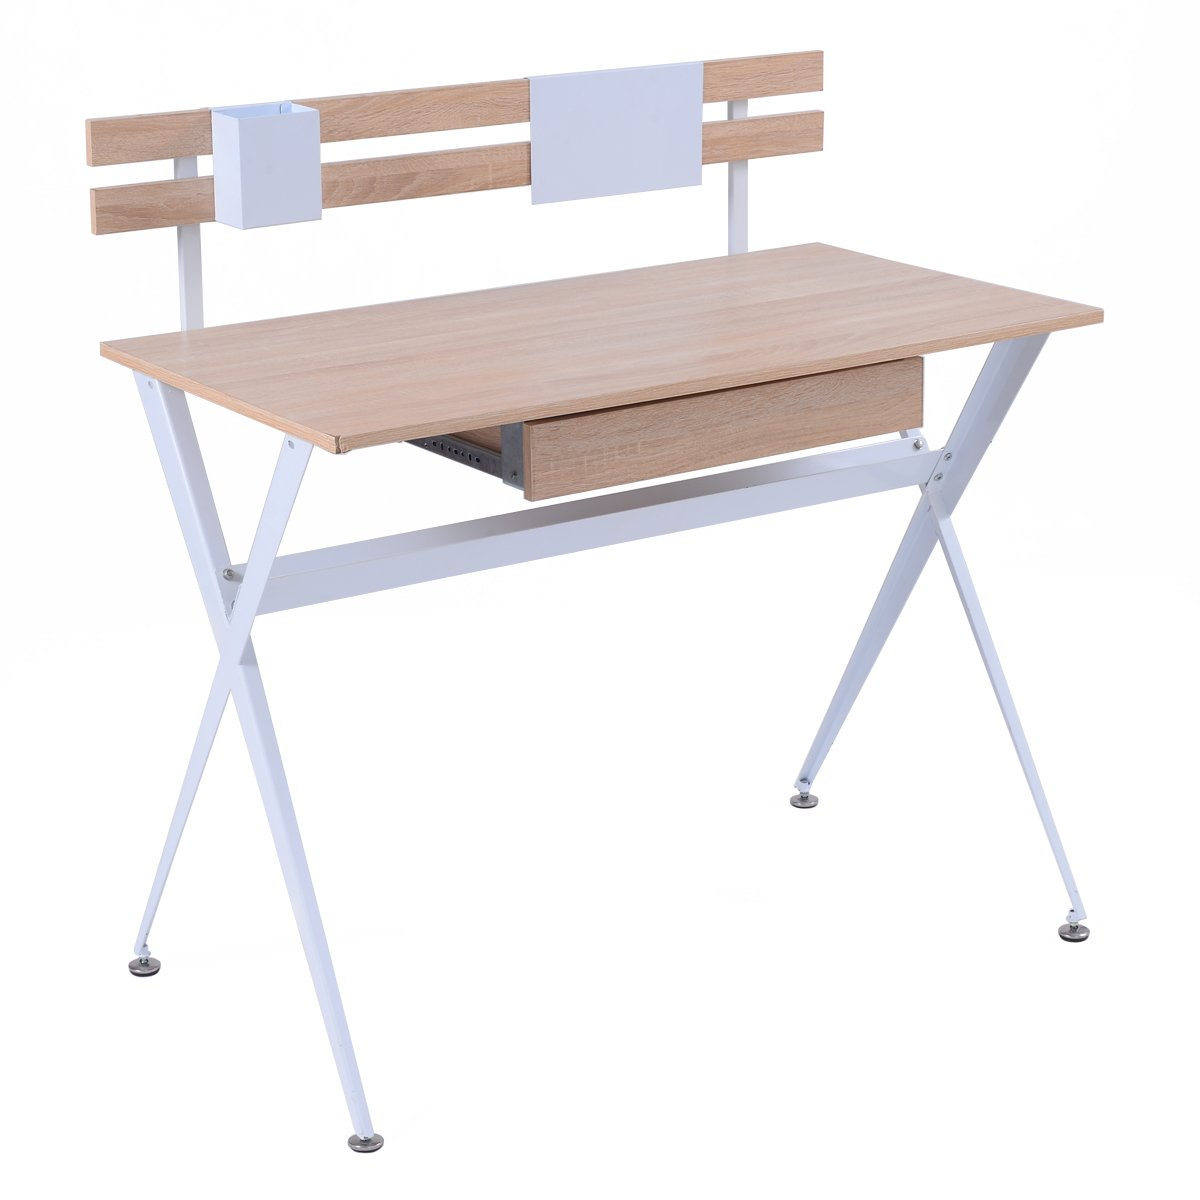 Tangkula Computer Desk Wood Top Writing Desk Home Office Furniture Computer Workstation Writing Desk for Home Or Office (White frame)